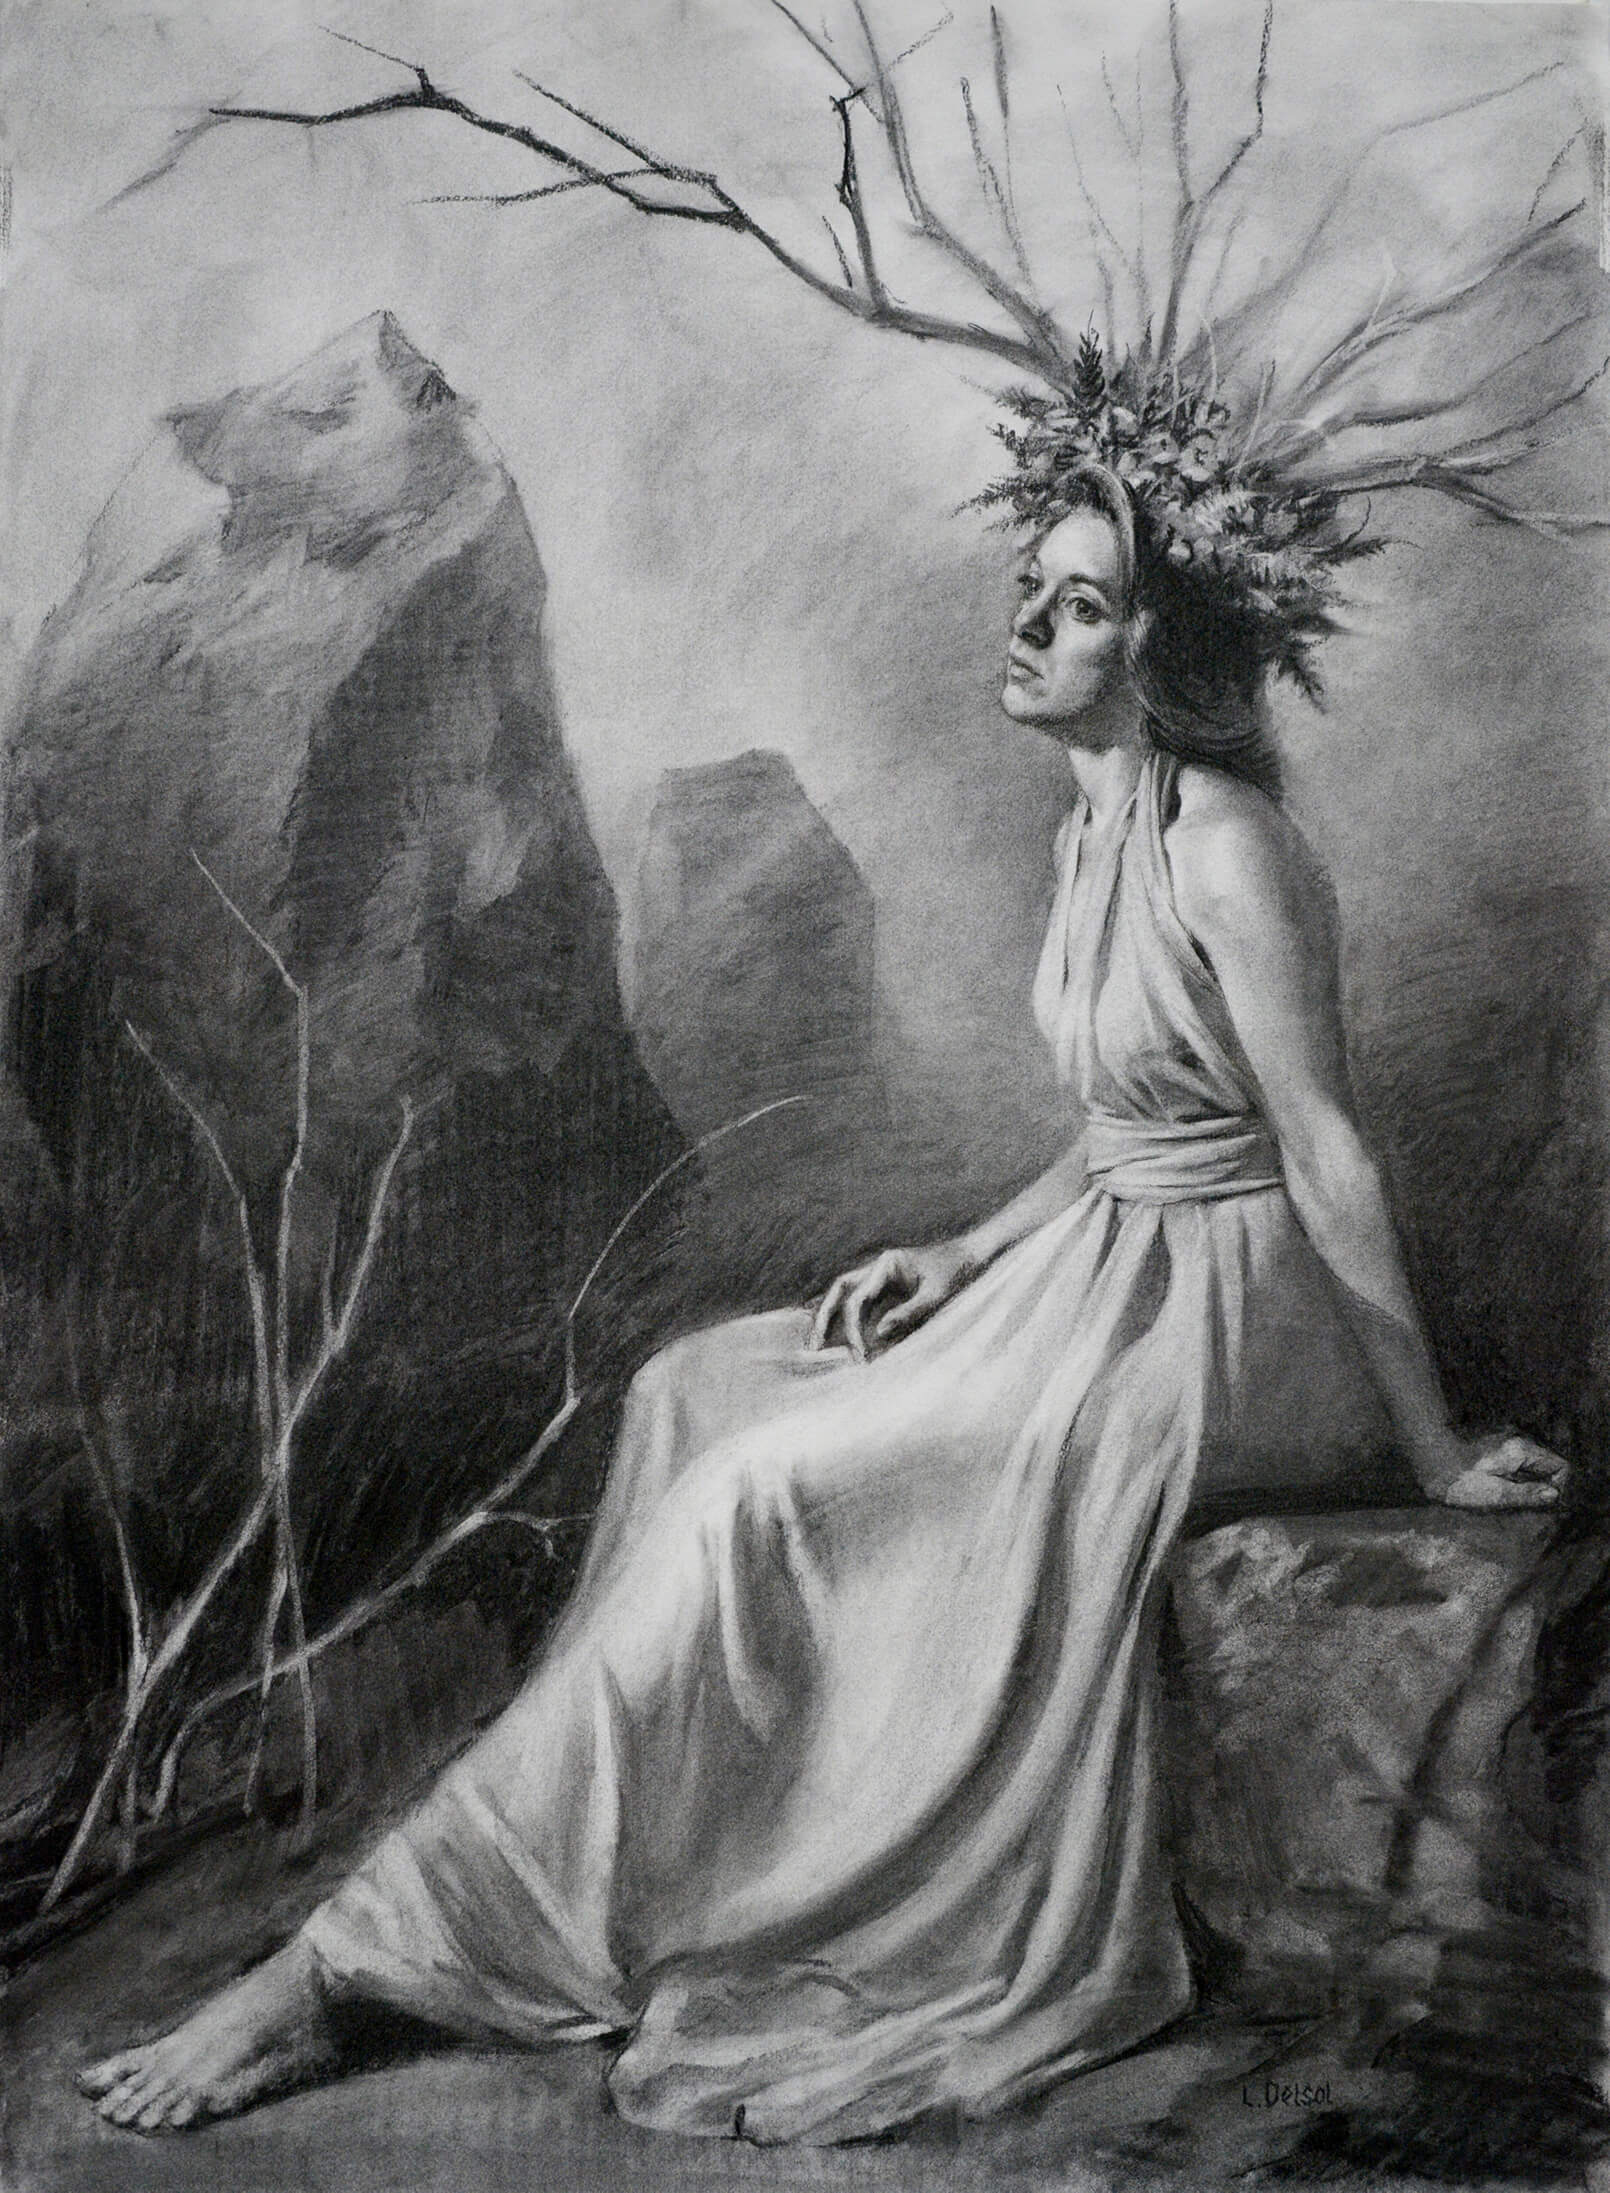 Full figure charcoal portrait of a woman with a stick and floral head dress sitting on a stone near a stone circle